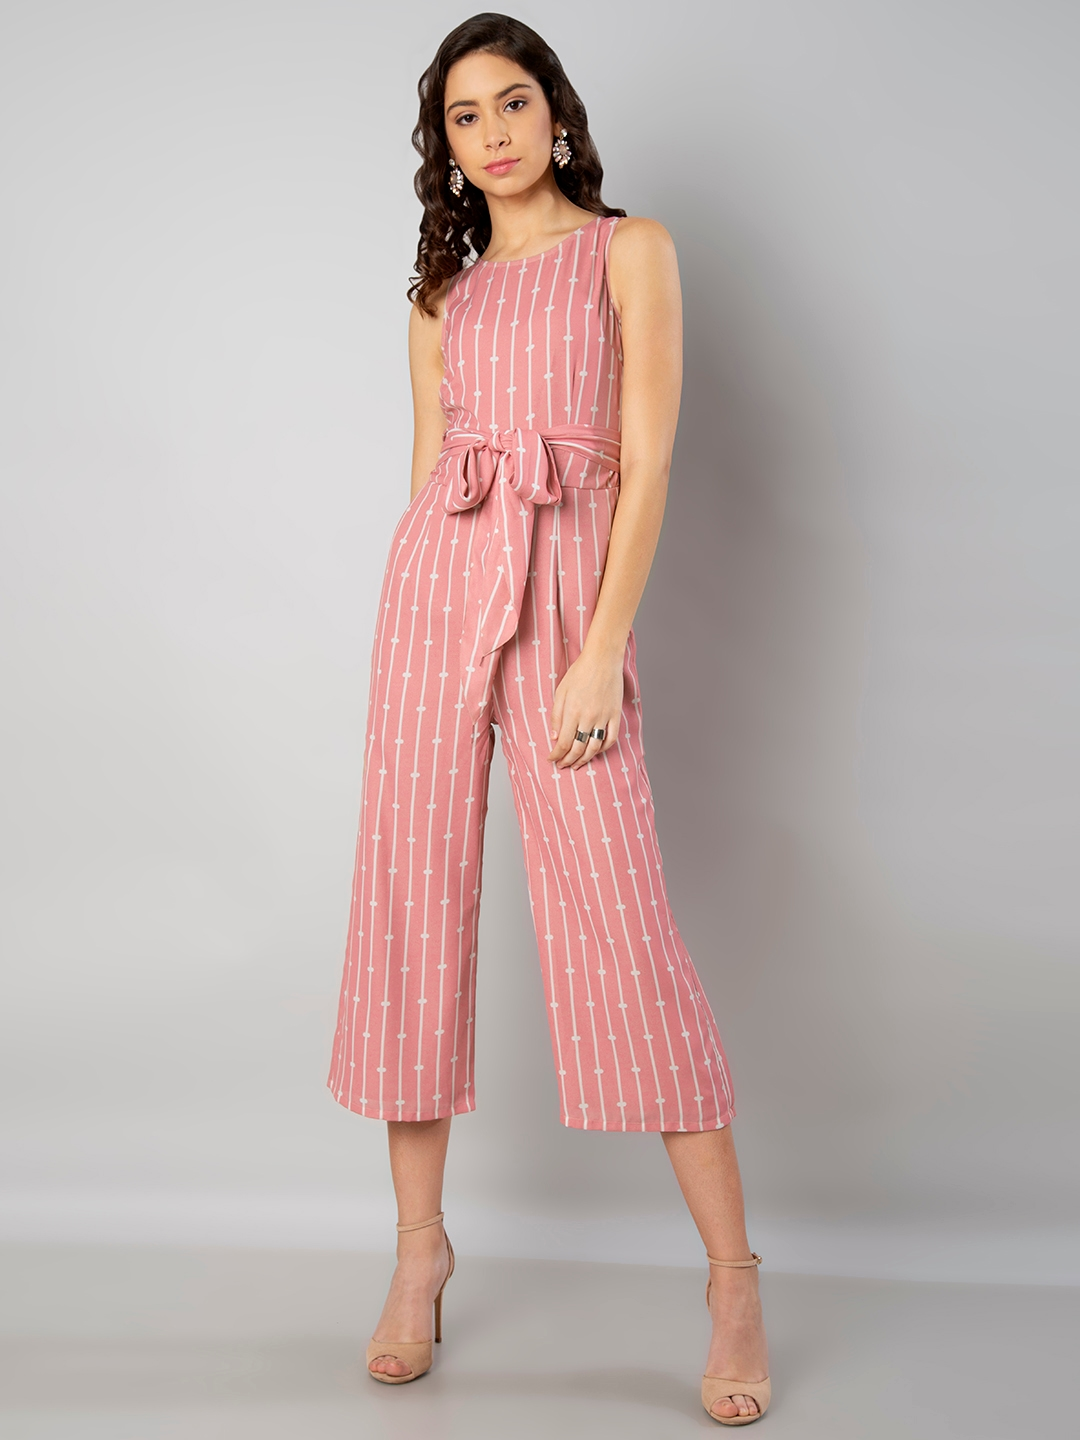 52496b0a772 Buy FabAlley Pink Striped Culotte Jumpsuit - Jumpsuit for Women ...